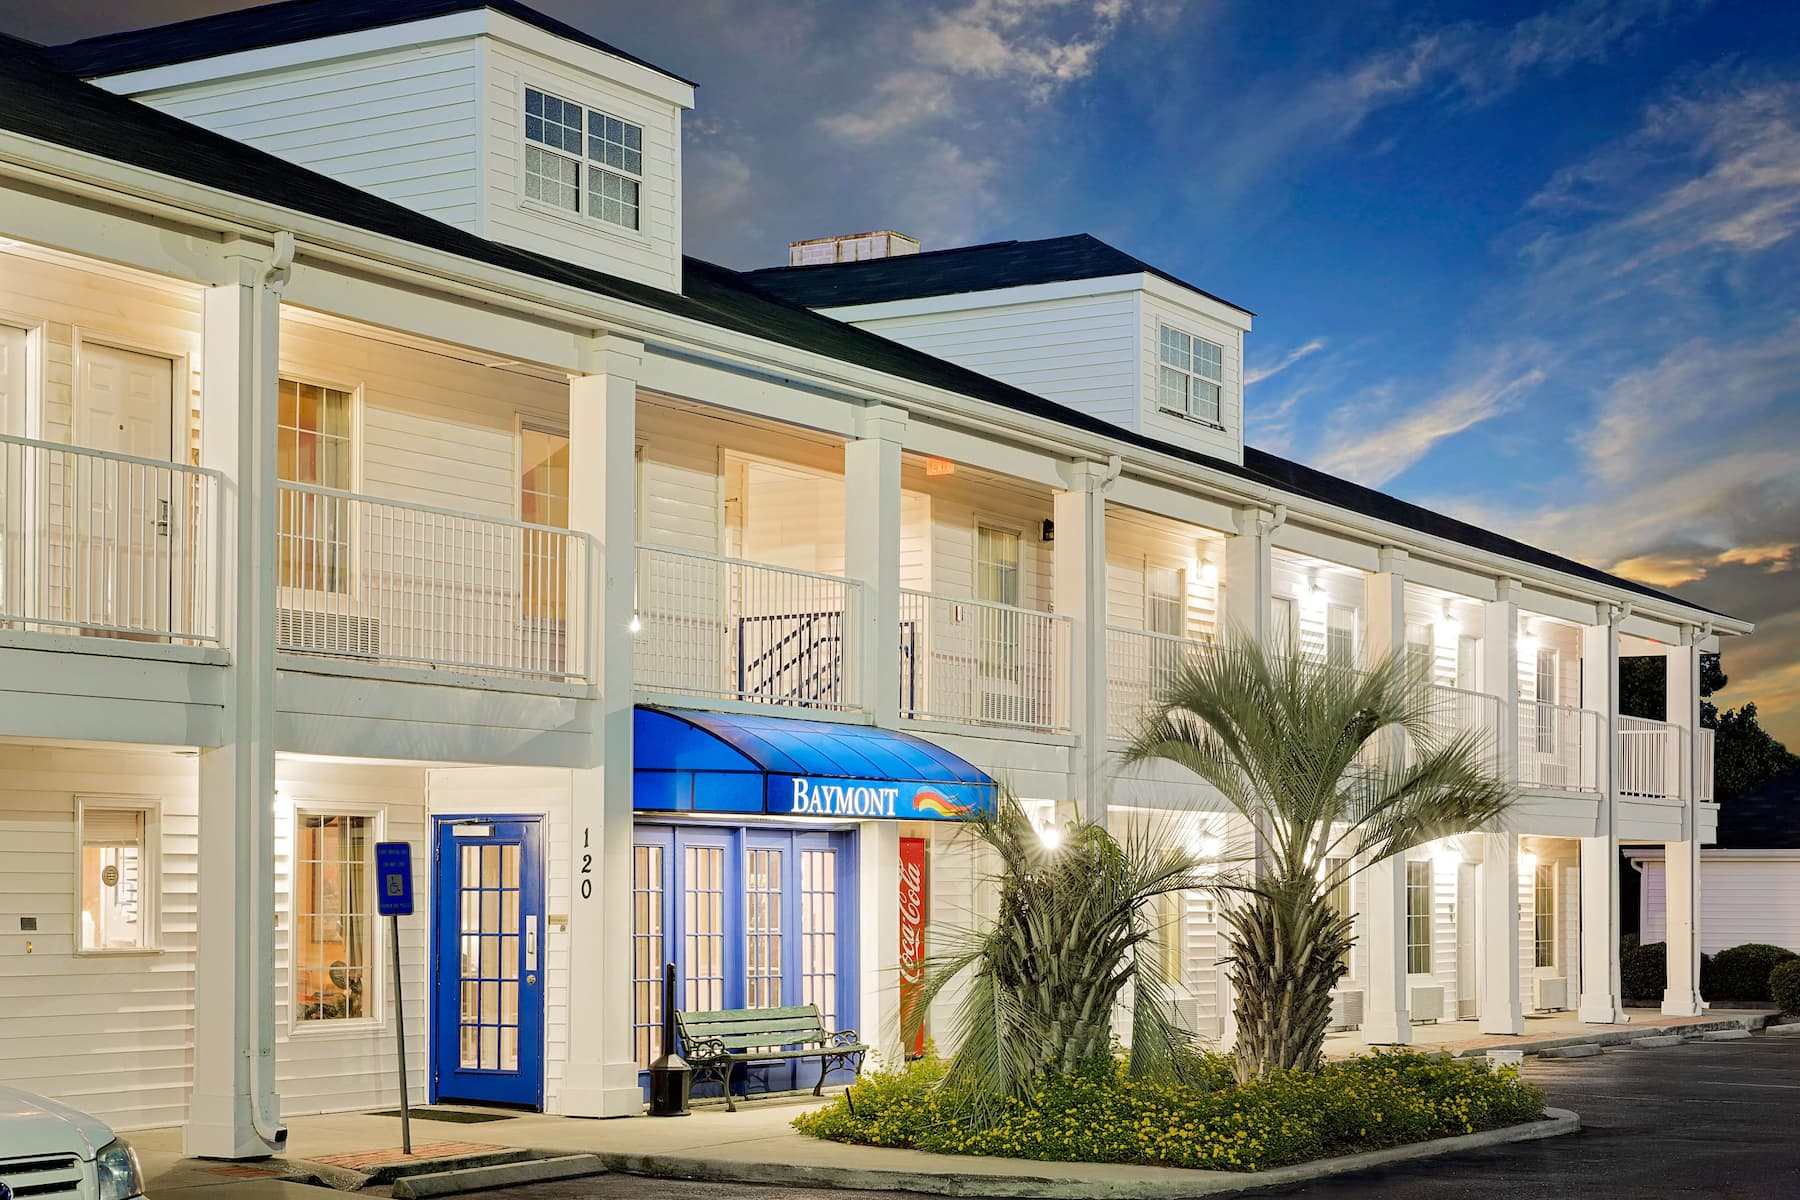 Exterior of Baymont by Wyndham Georgetown/Near Georgetown Marina hotel in Georgetown, South Carolina